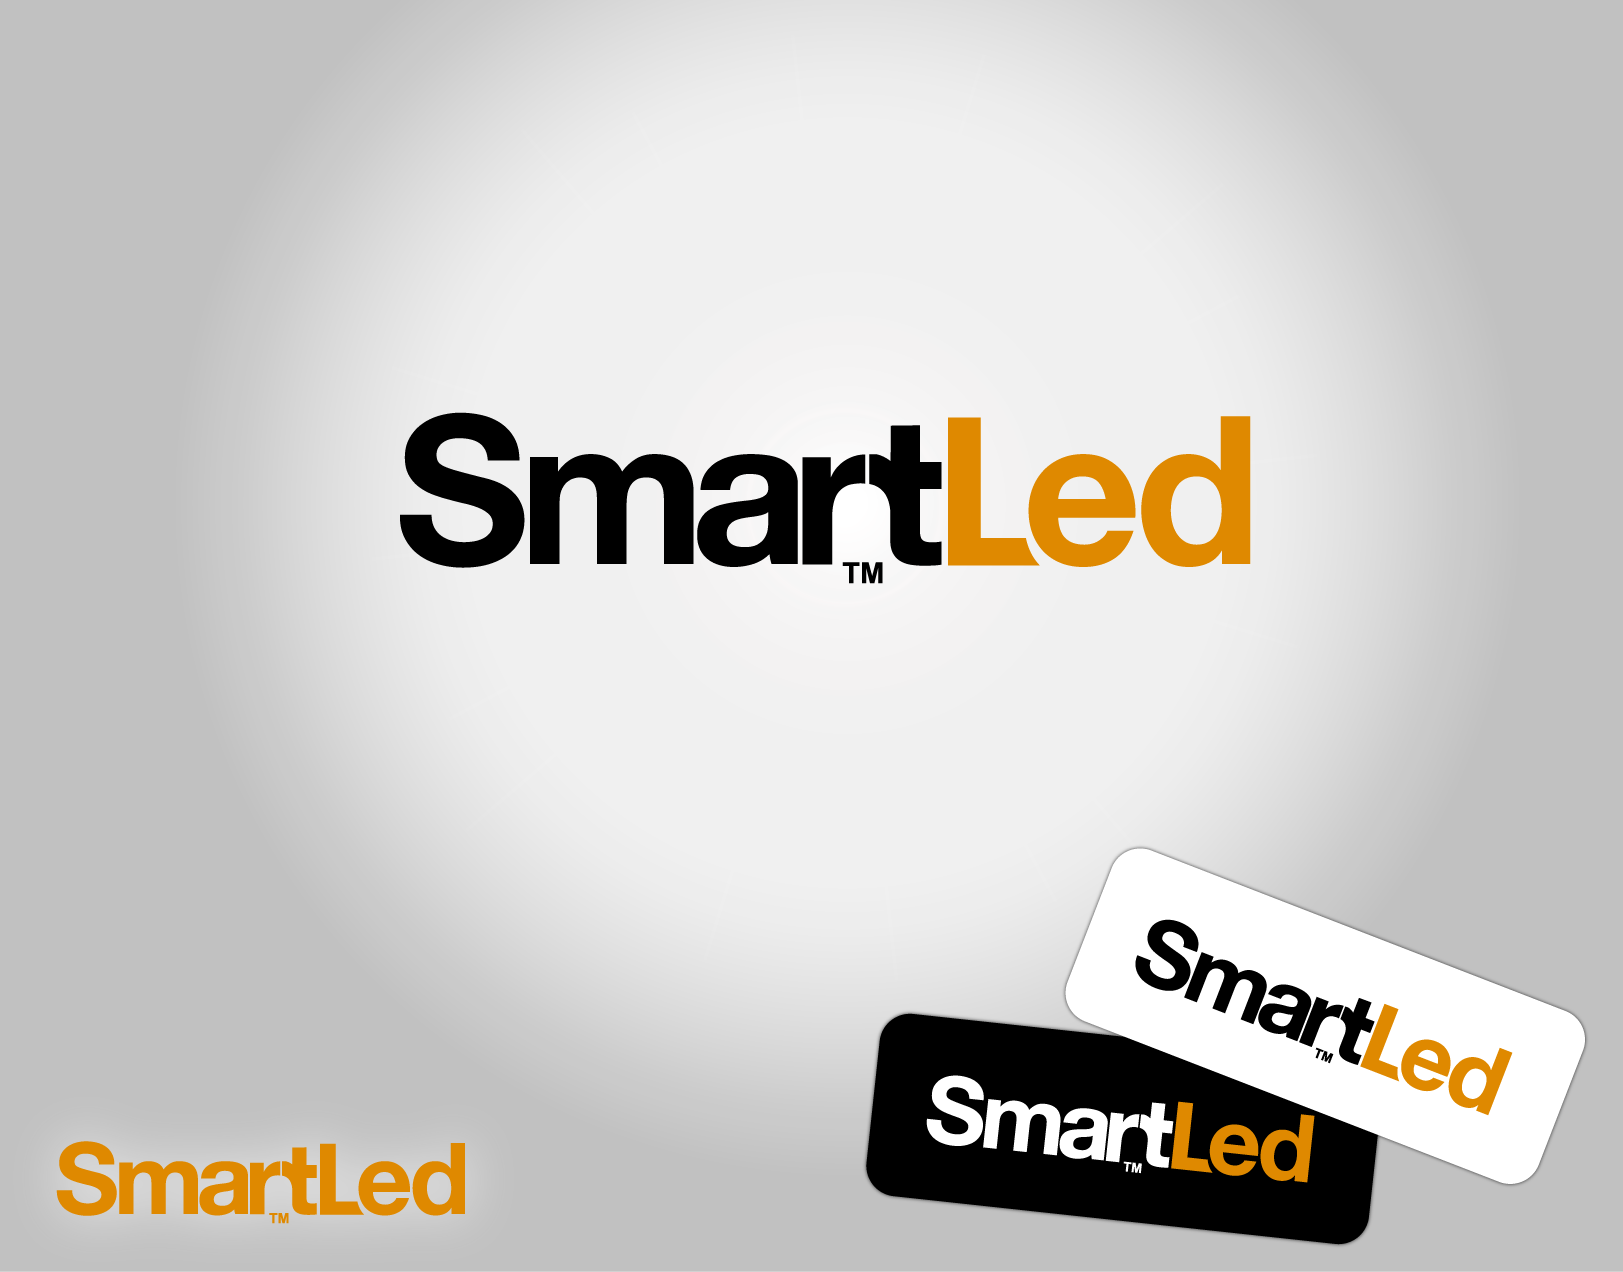 New logo wanted for SmartLed